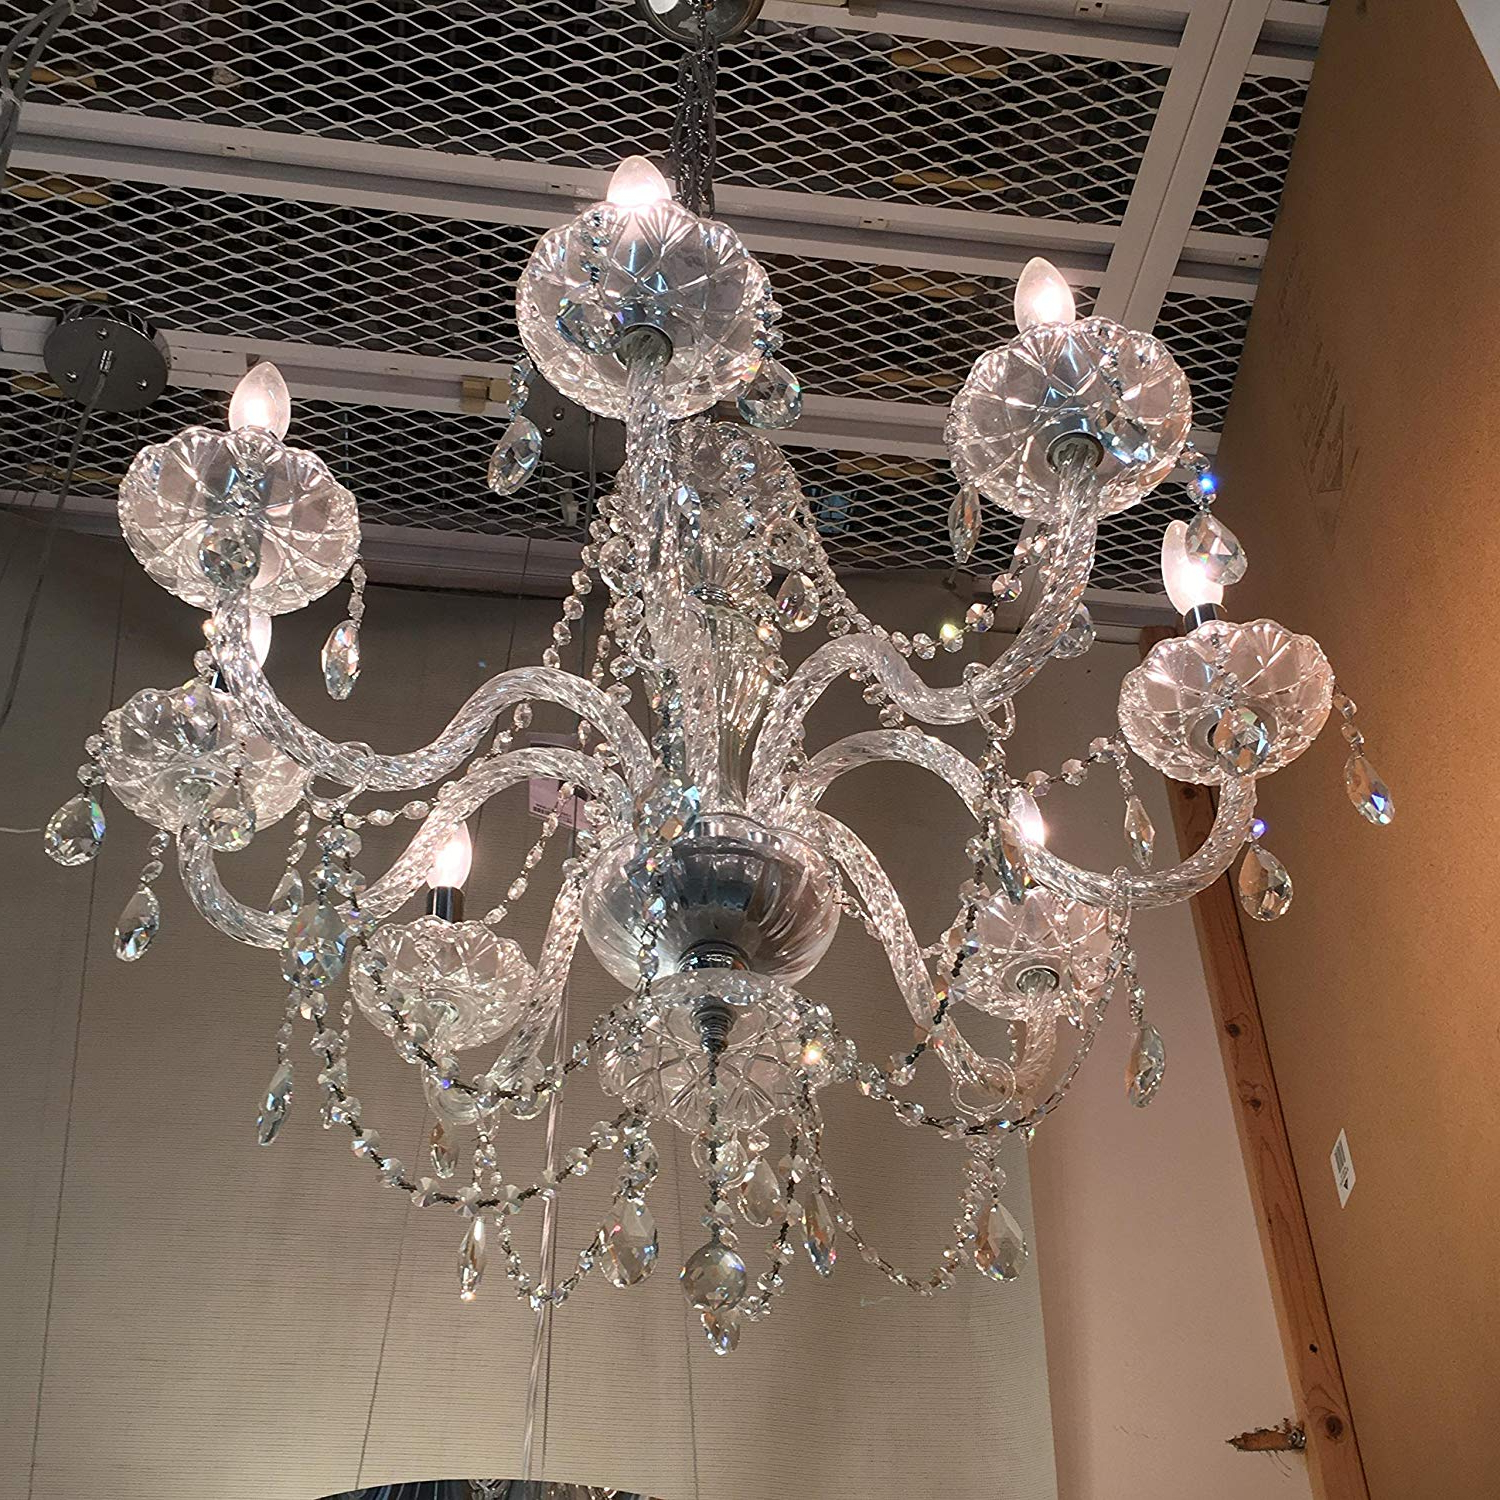 2019 Amazon: 8 Light Crystal Chandelier: Home & Kitchen Within Gracelyn 8 Light Kitchen Island Pendants (View 1 of 25)